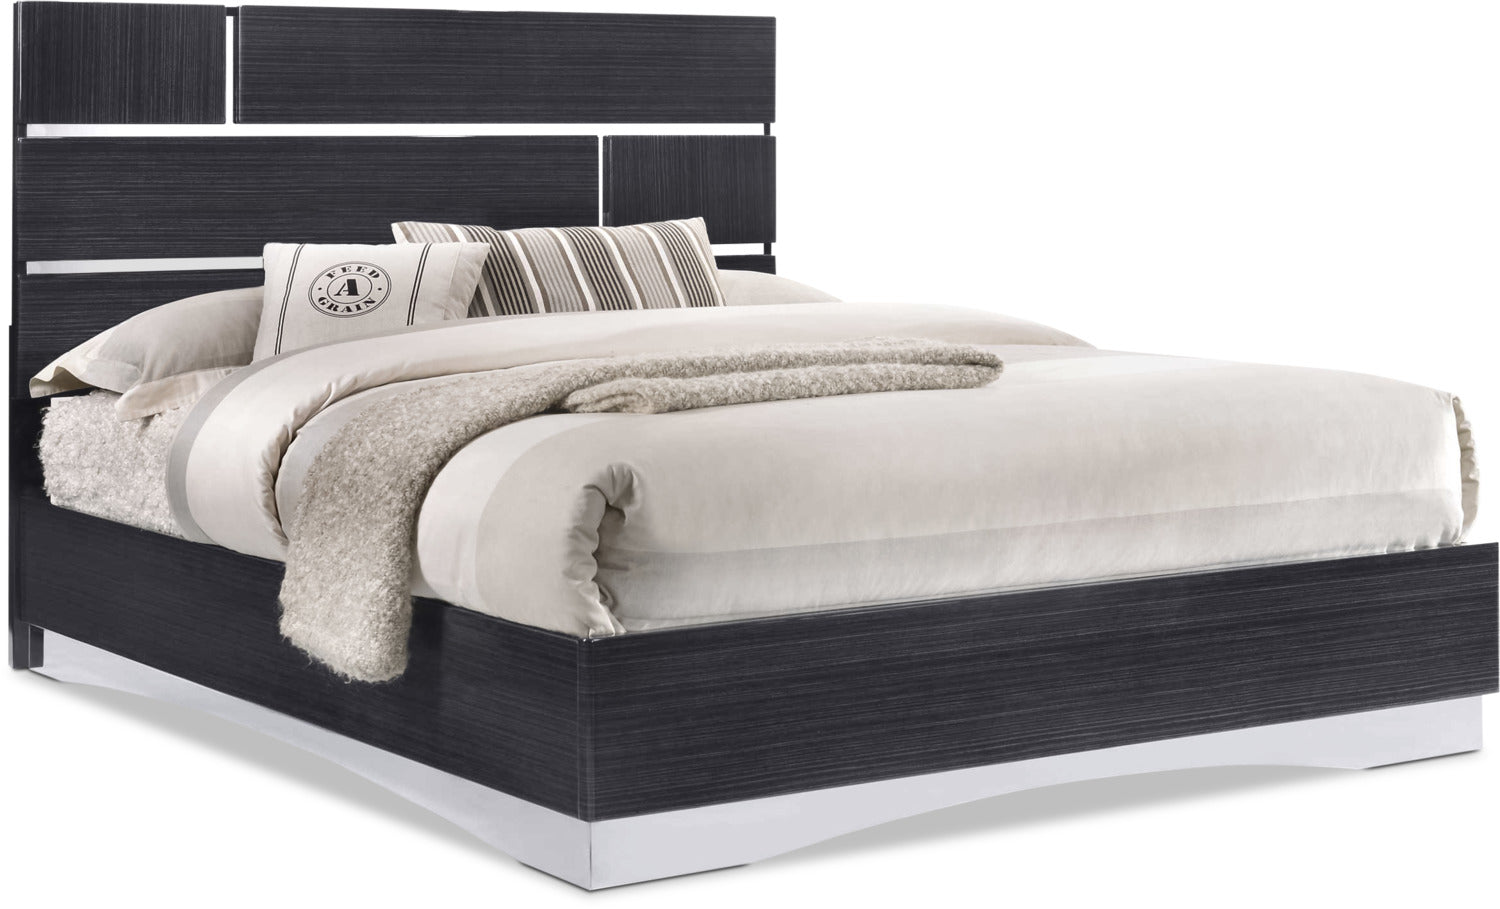 Stanton King Platform Bed Black The Brick